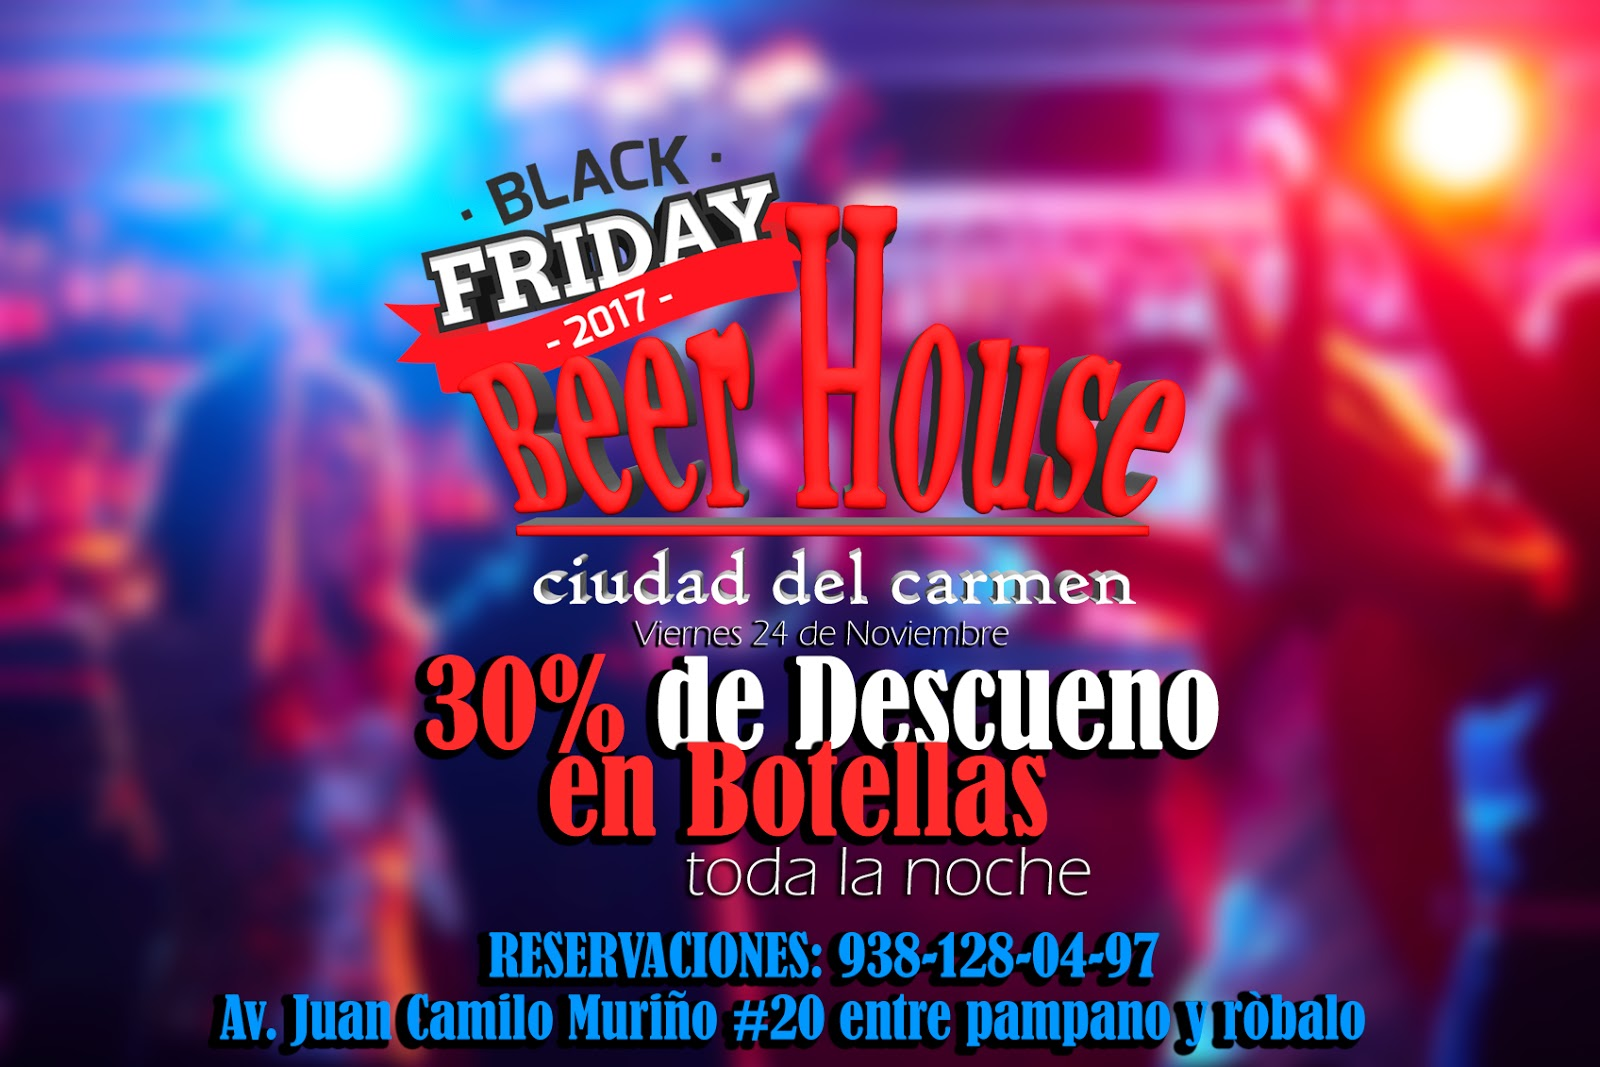 Diseño Publicitario flyers + video + Rediseño de logotipo [Beer House]